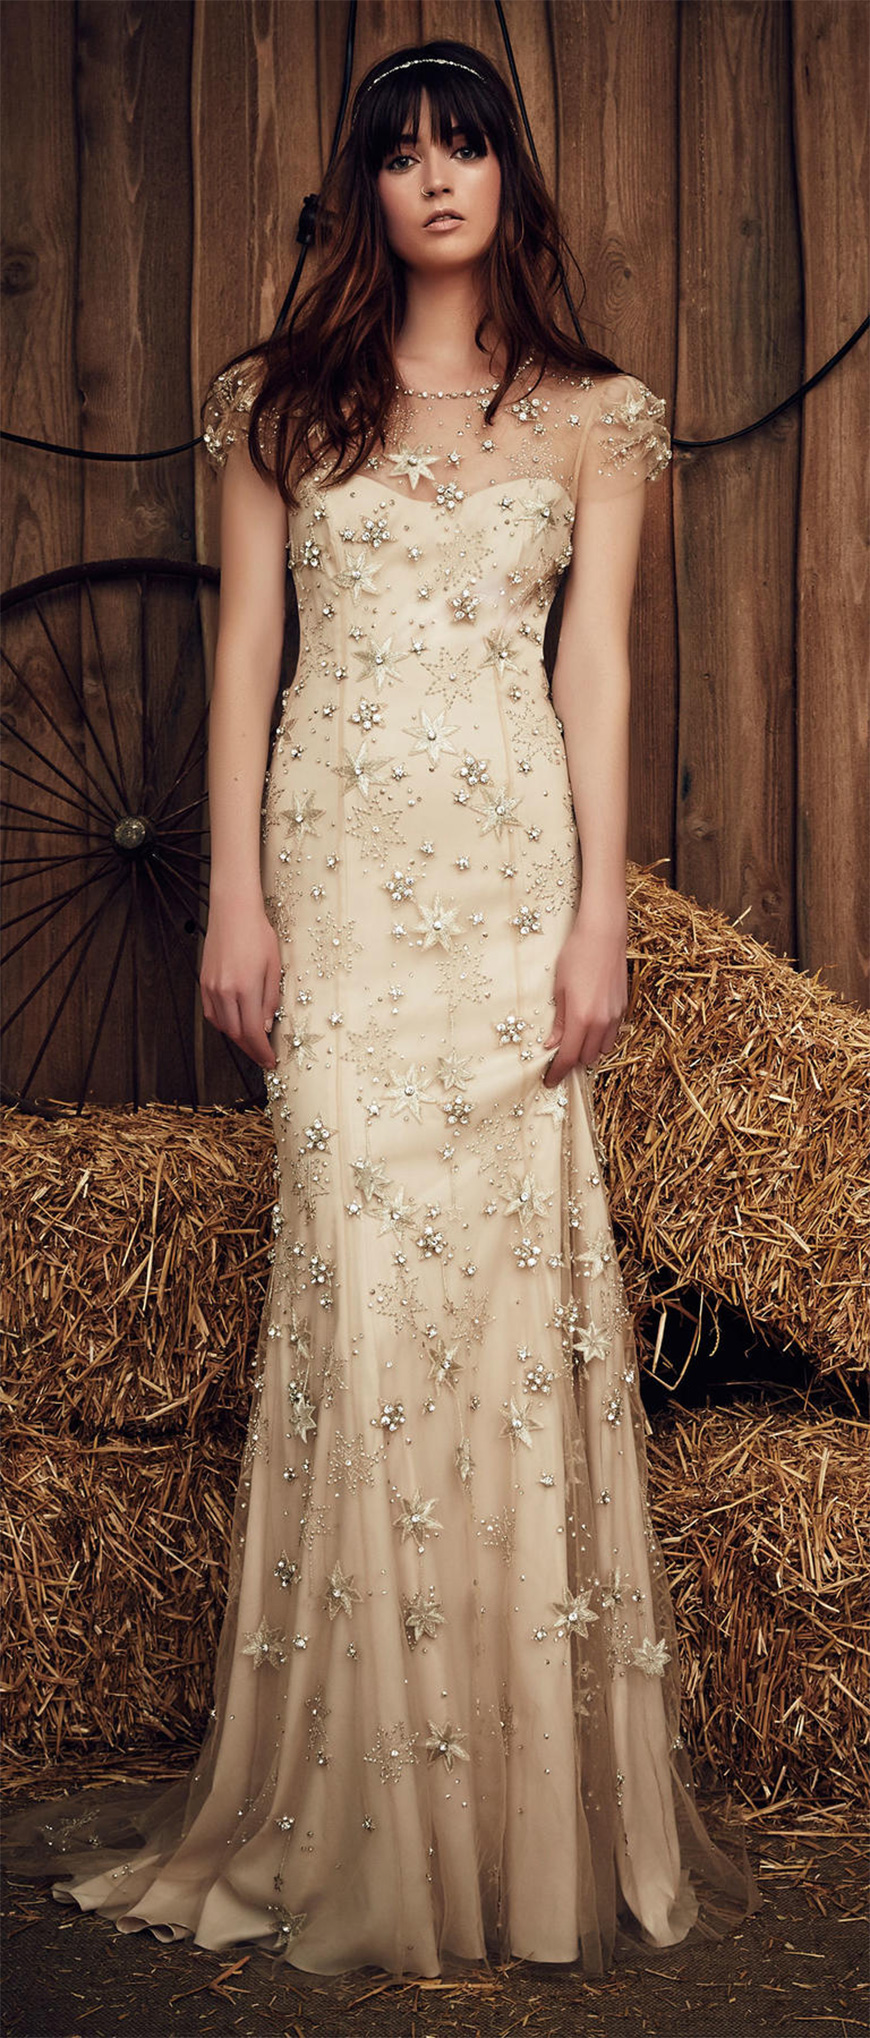 Fashion focus: 2017's top quirky wedding dresses - Gold star | CHWV